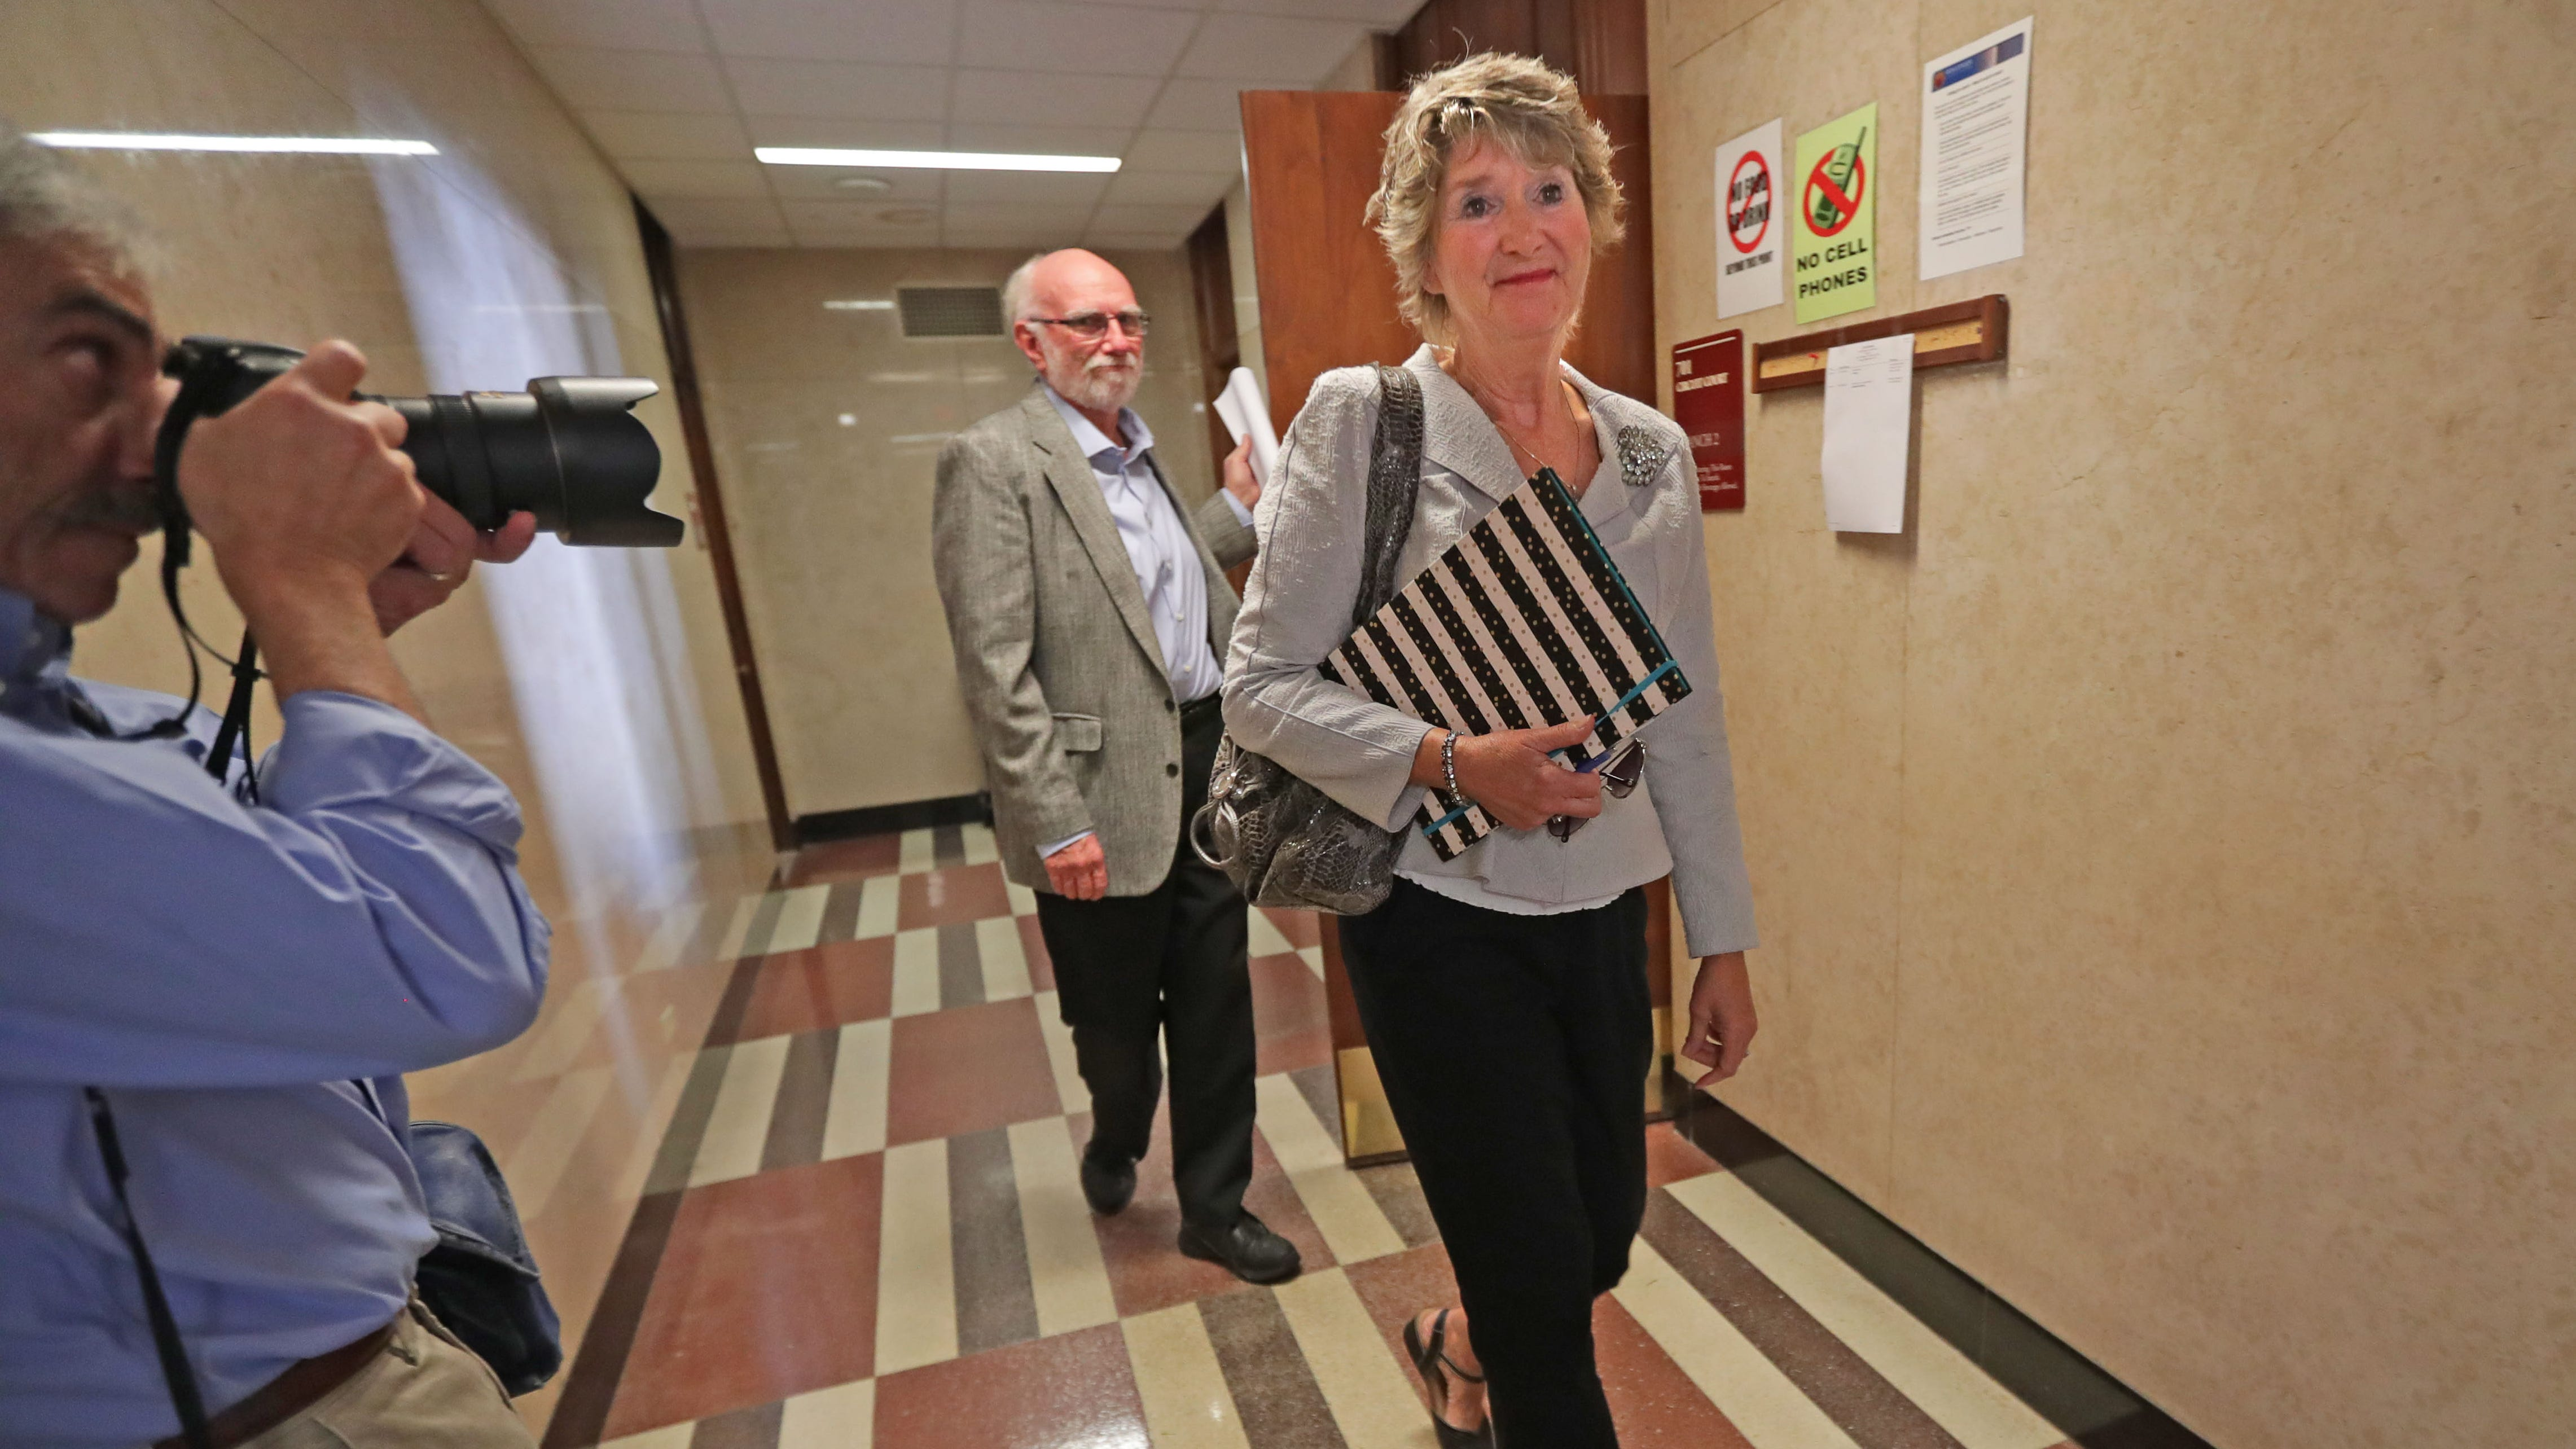 Racine elected official found in contempt for discussing secret open records case